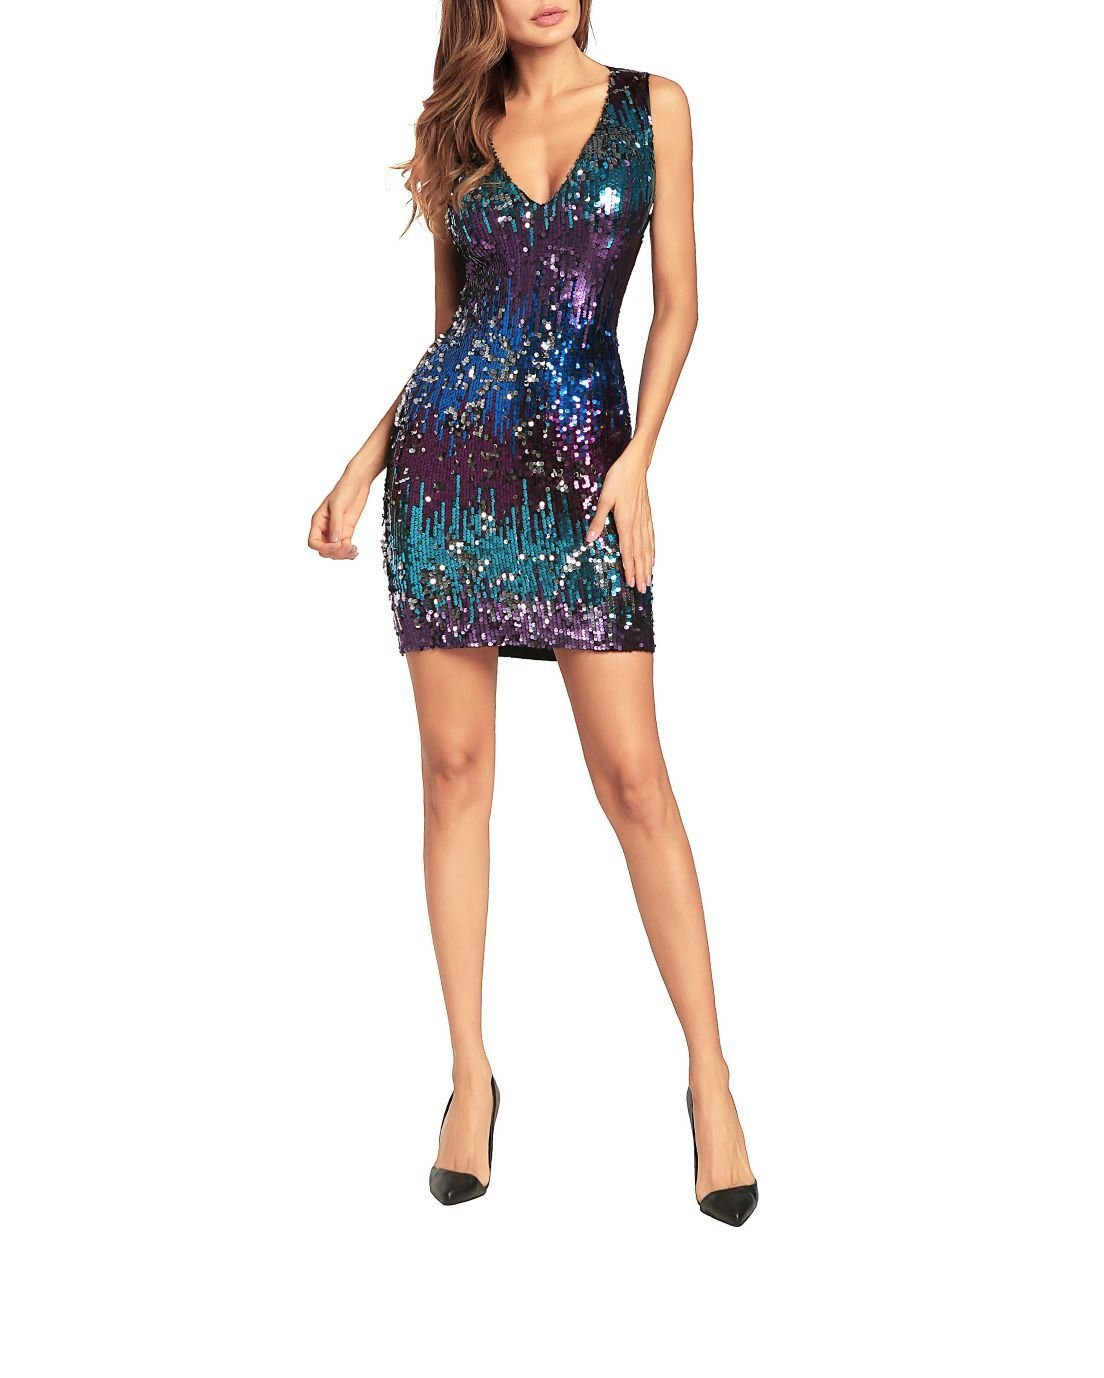 Bodycon Sequin Dresses in 3 Color Options